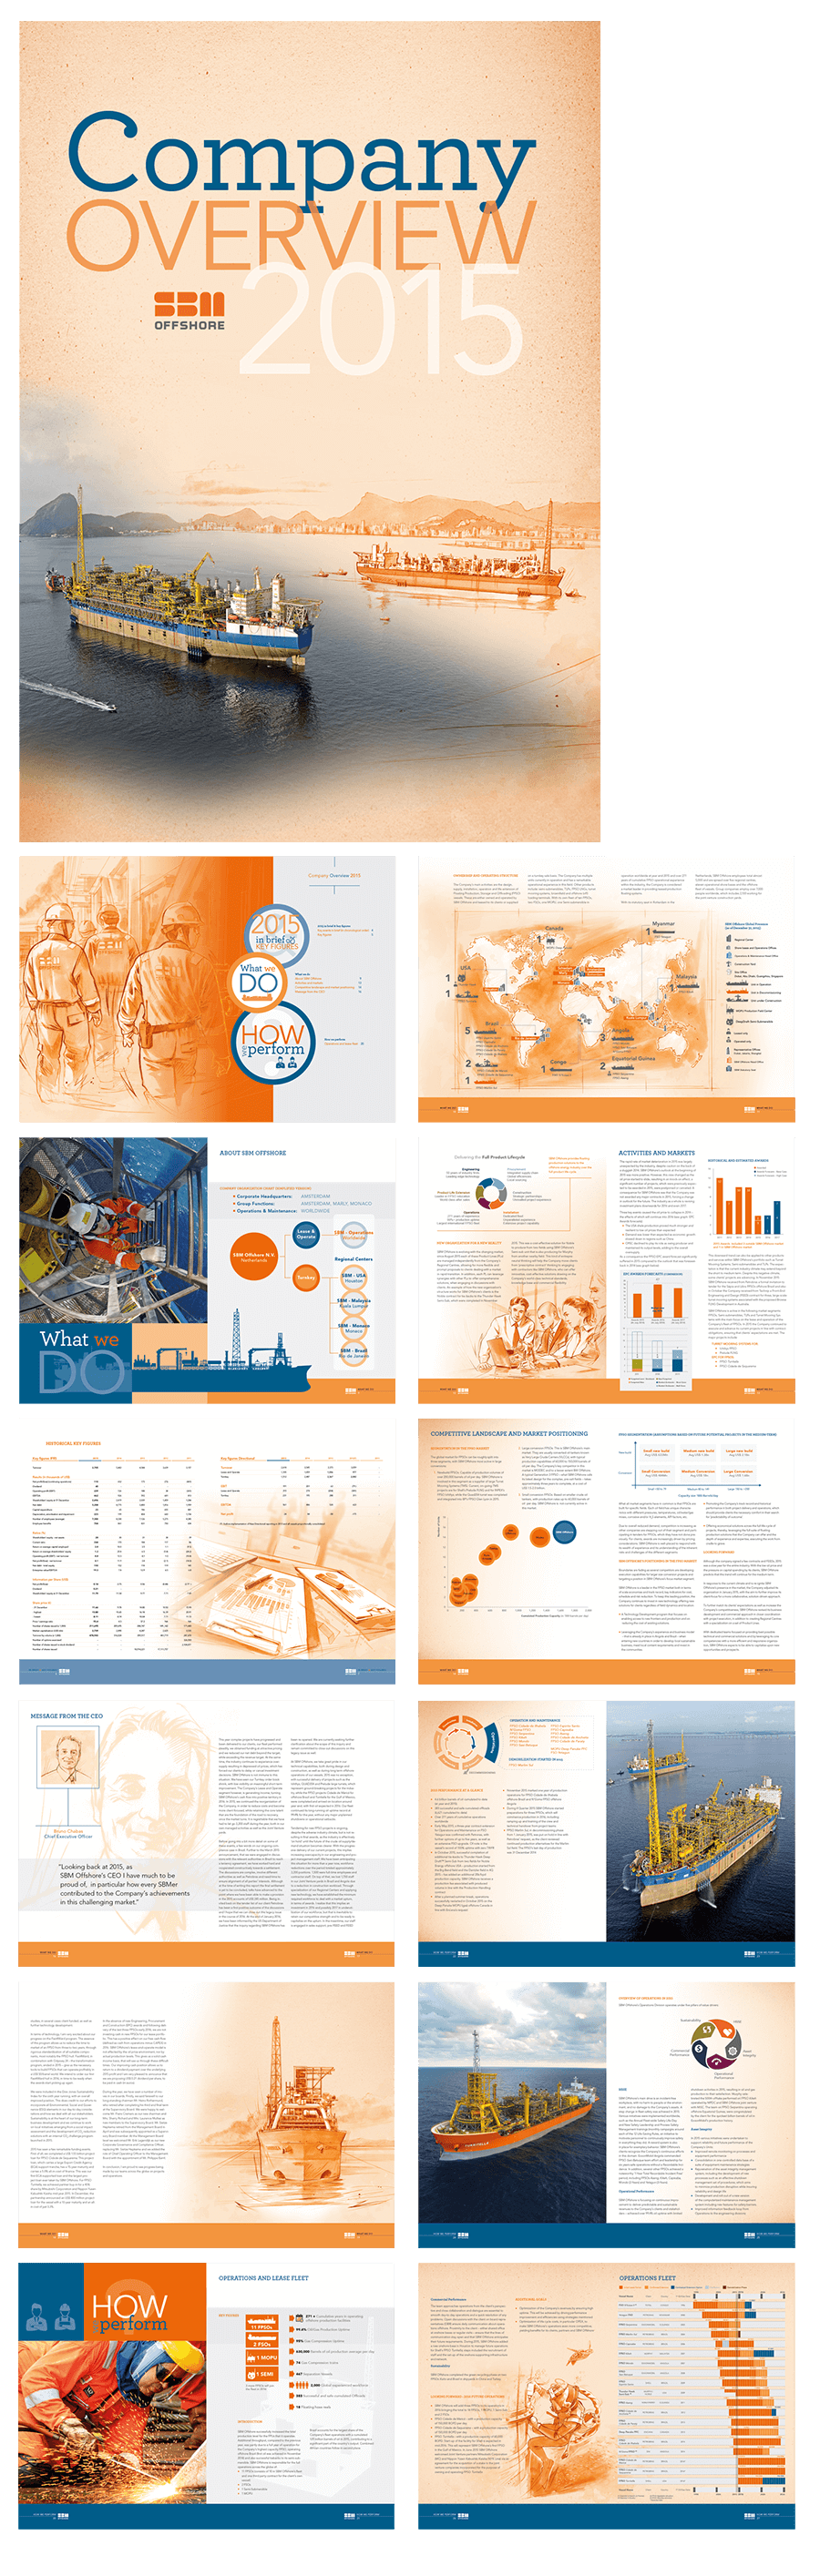 SBM offshore-annual report-Equation advertising Brussels